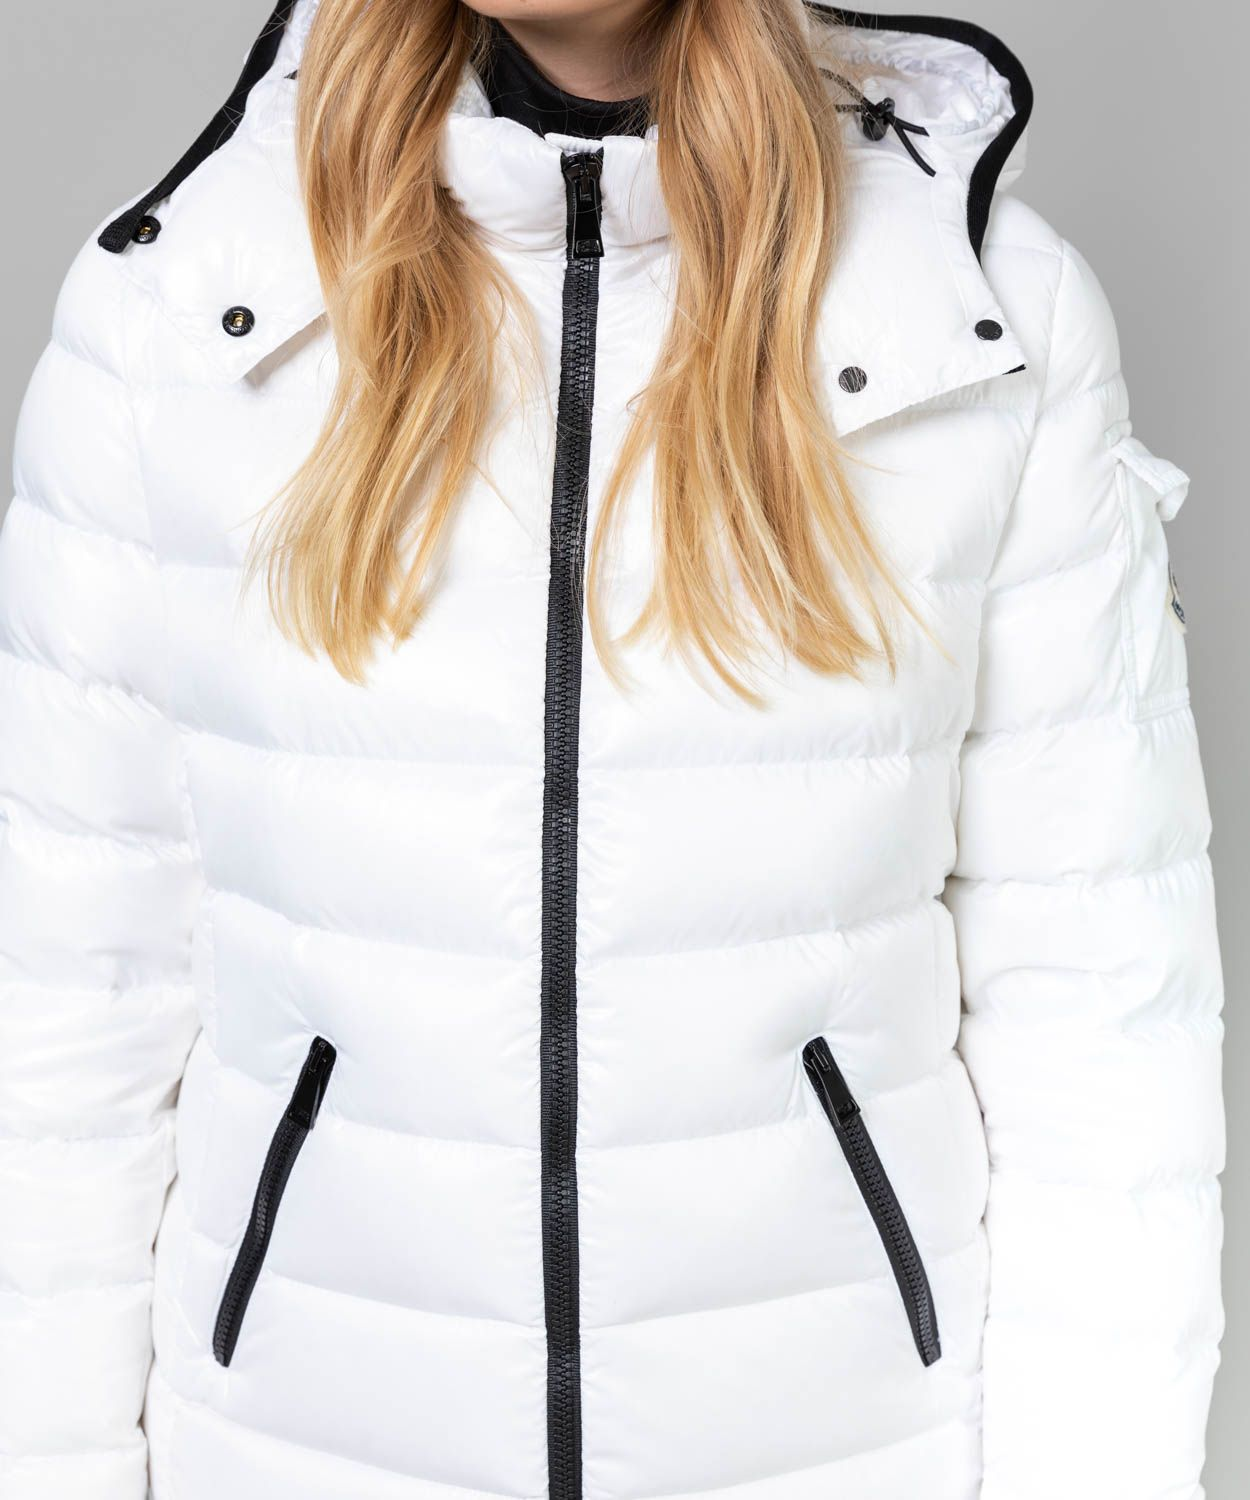 Women's Bady Hooded Jacket